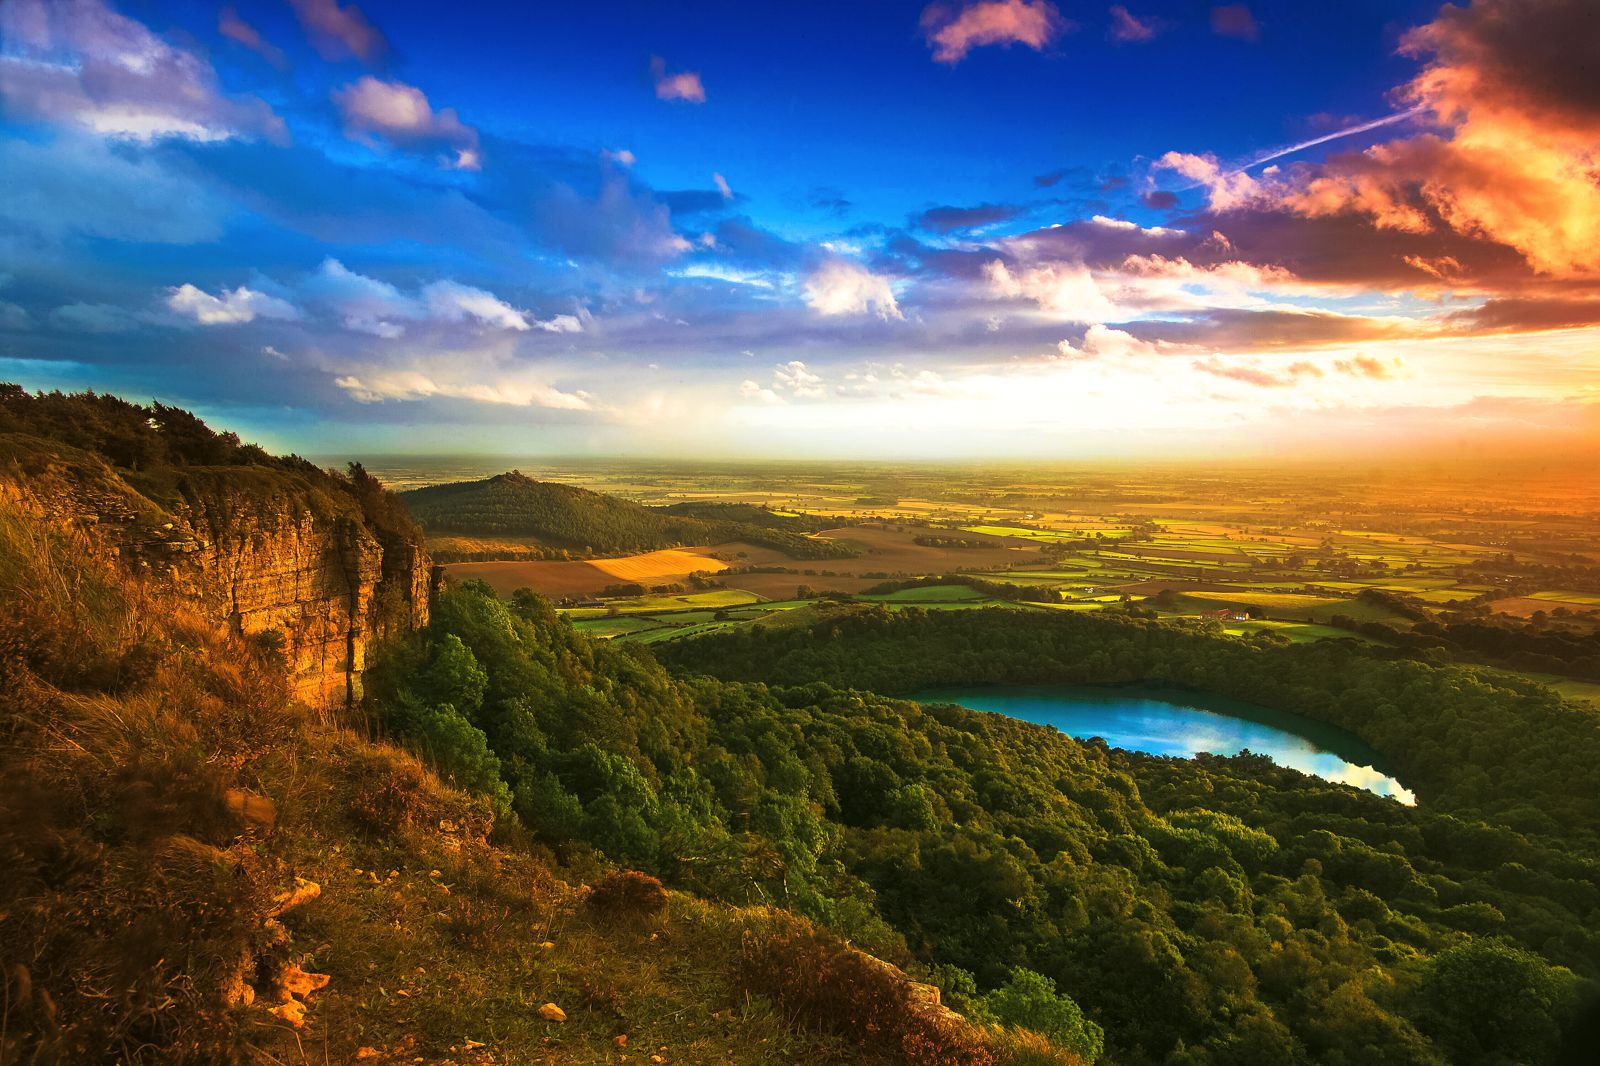 The Rolling Hills Of Yorkshire... 11 Photos That Will Make You Want To Visit Yorkshire! (4)